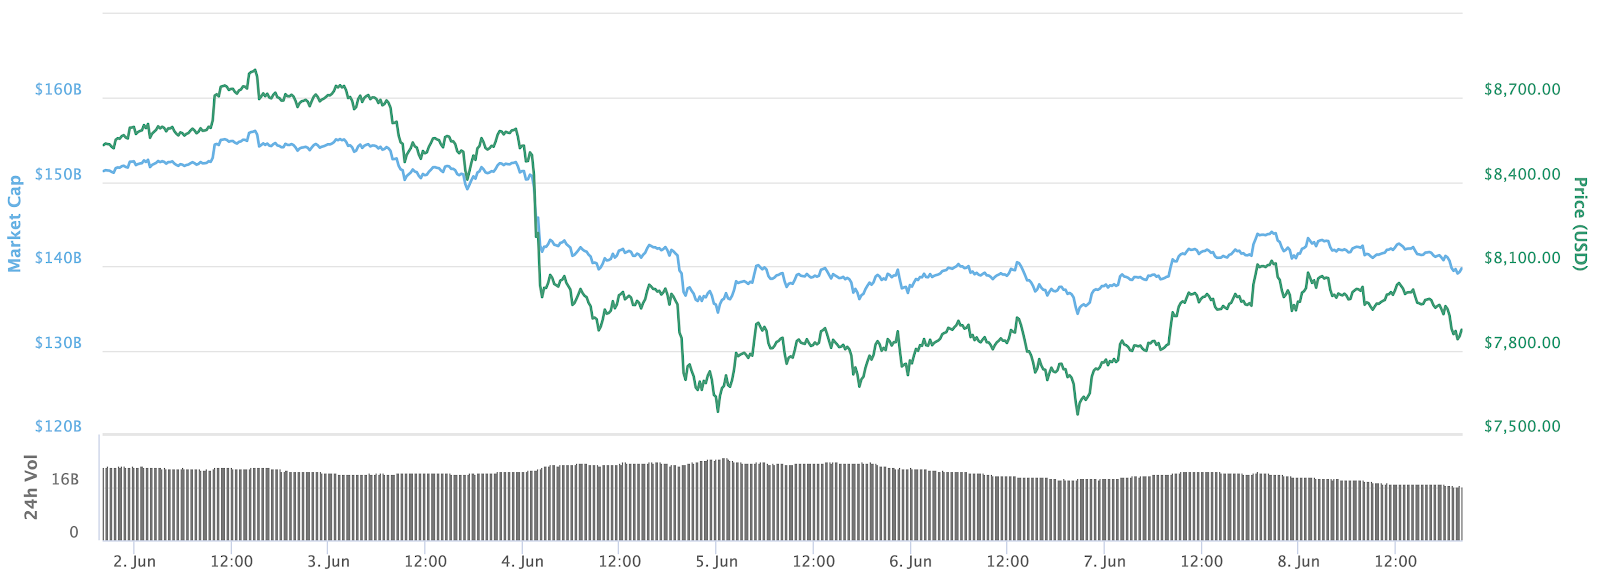 Bitcoin Price Dips Back Under $8K as Top Cryptos See Moderate Losses